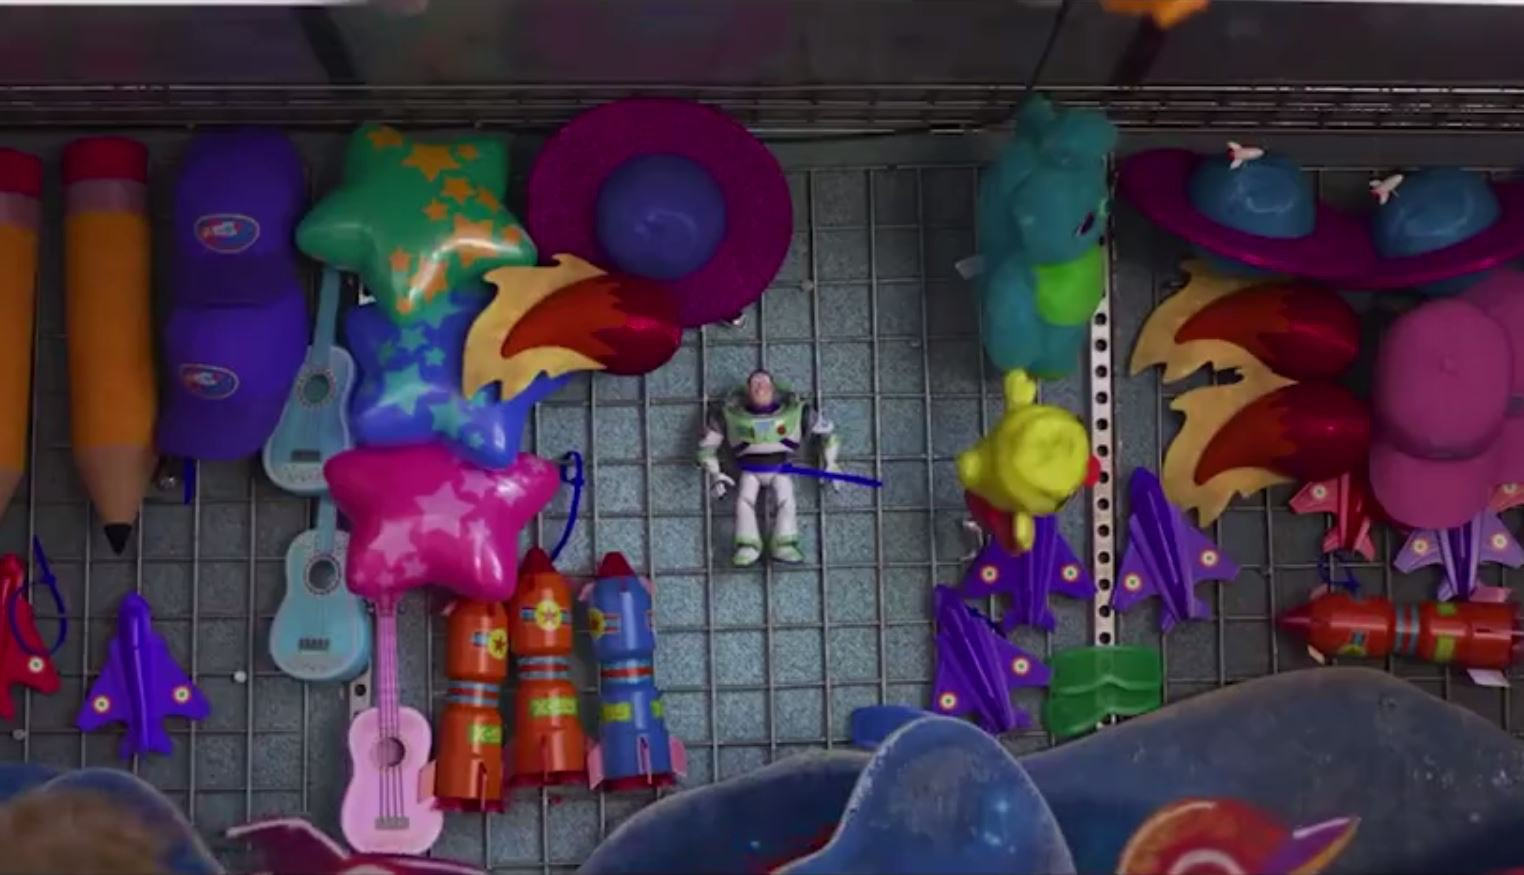 New Toy Story 4 trailer sees Buzz Lightyear take on Ducky and Bunny